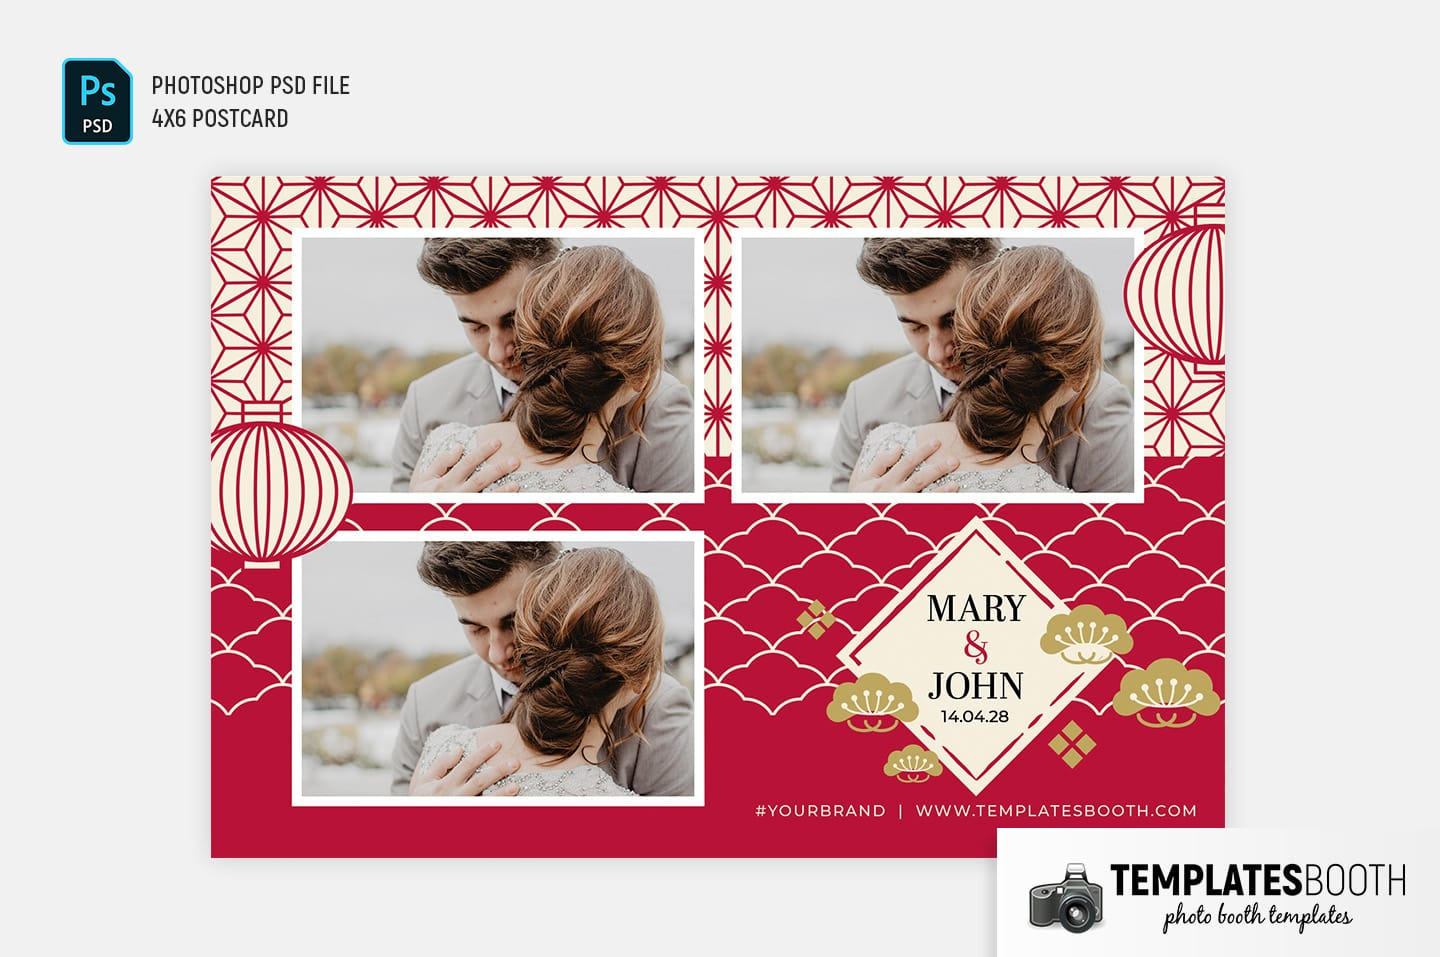 Chinese Wedding Photo Booth Template (4x6 postcard)